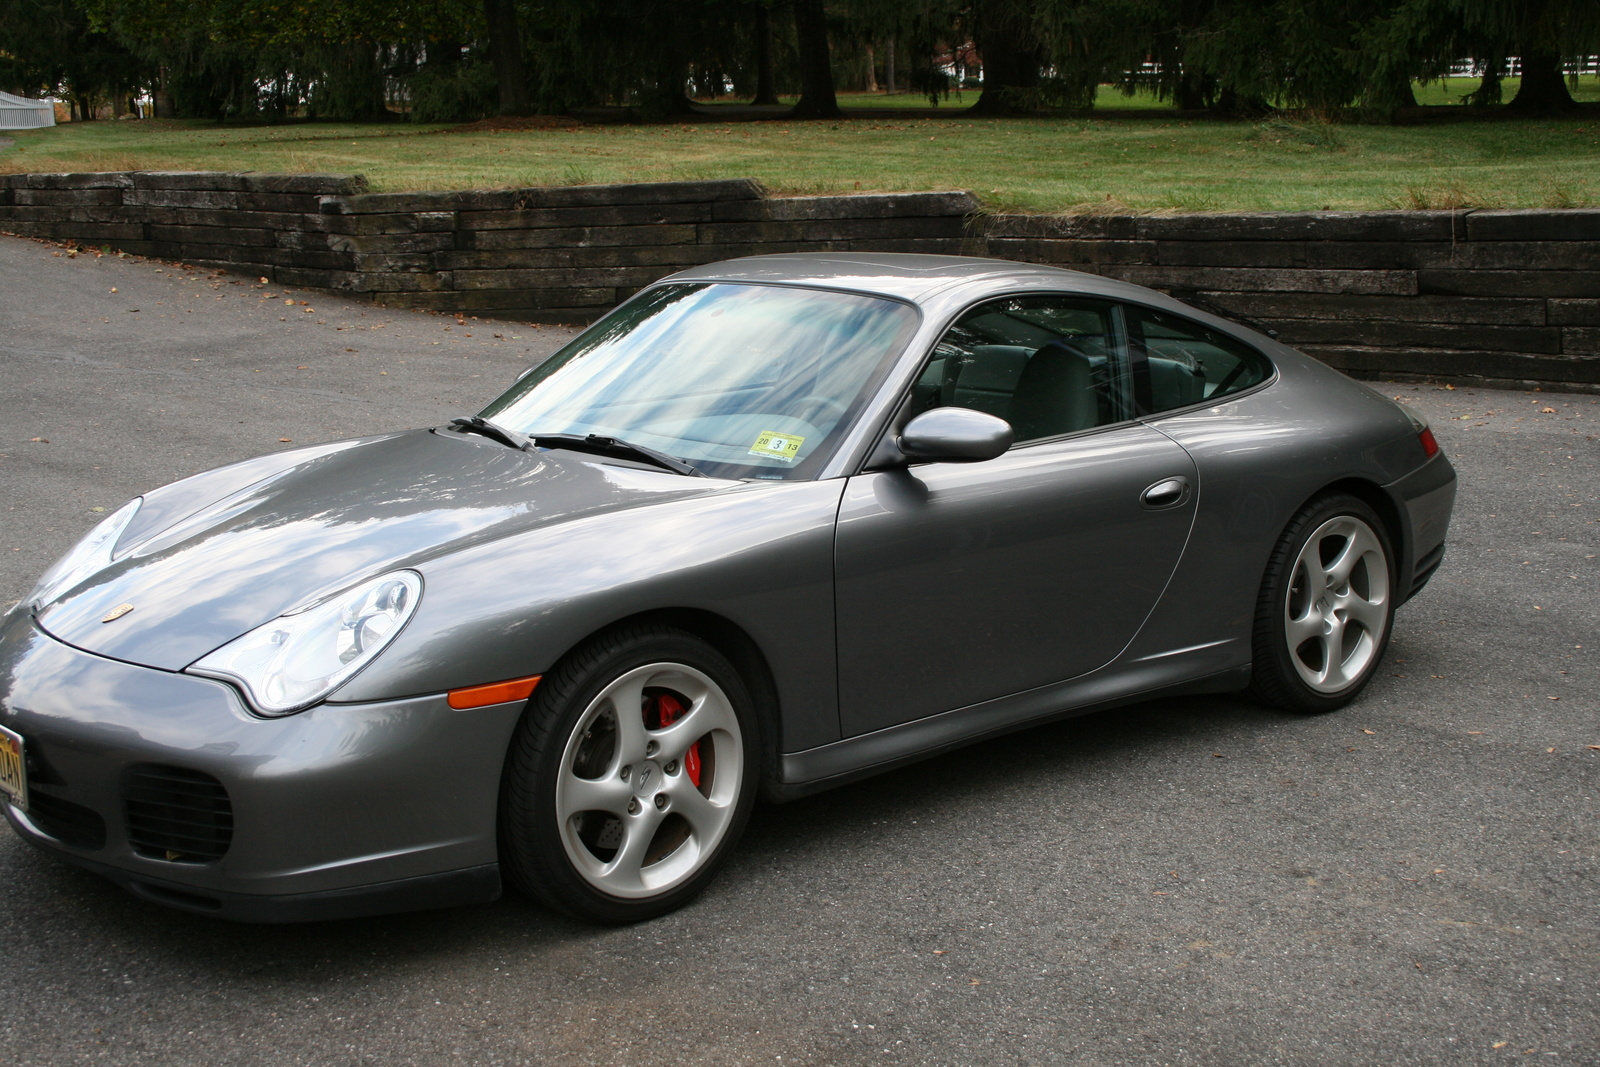 All Types 2003 911 : 2003 Porsche 911 GT2 996 related infomation,specifications - WeiLi ...